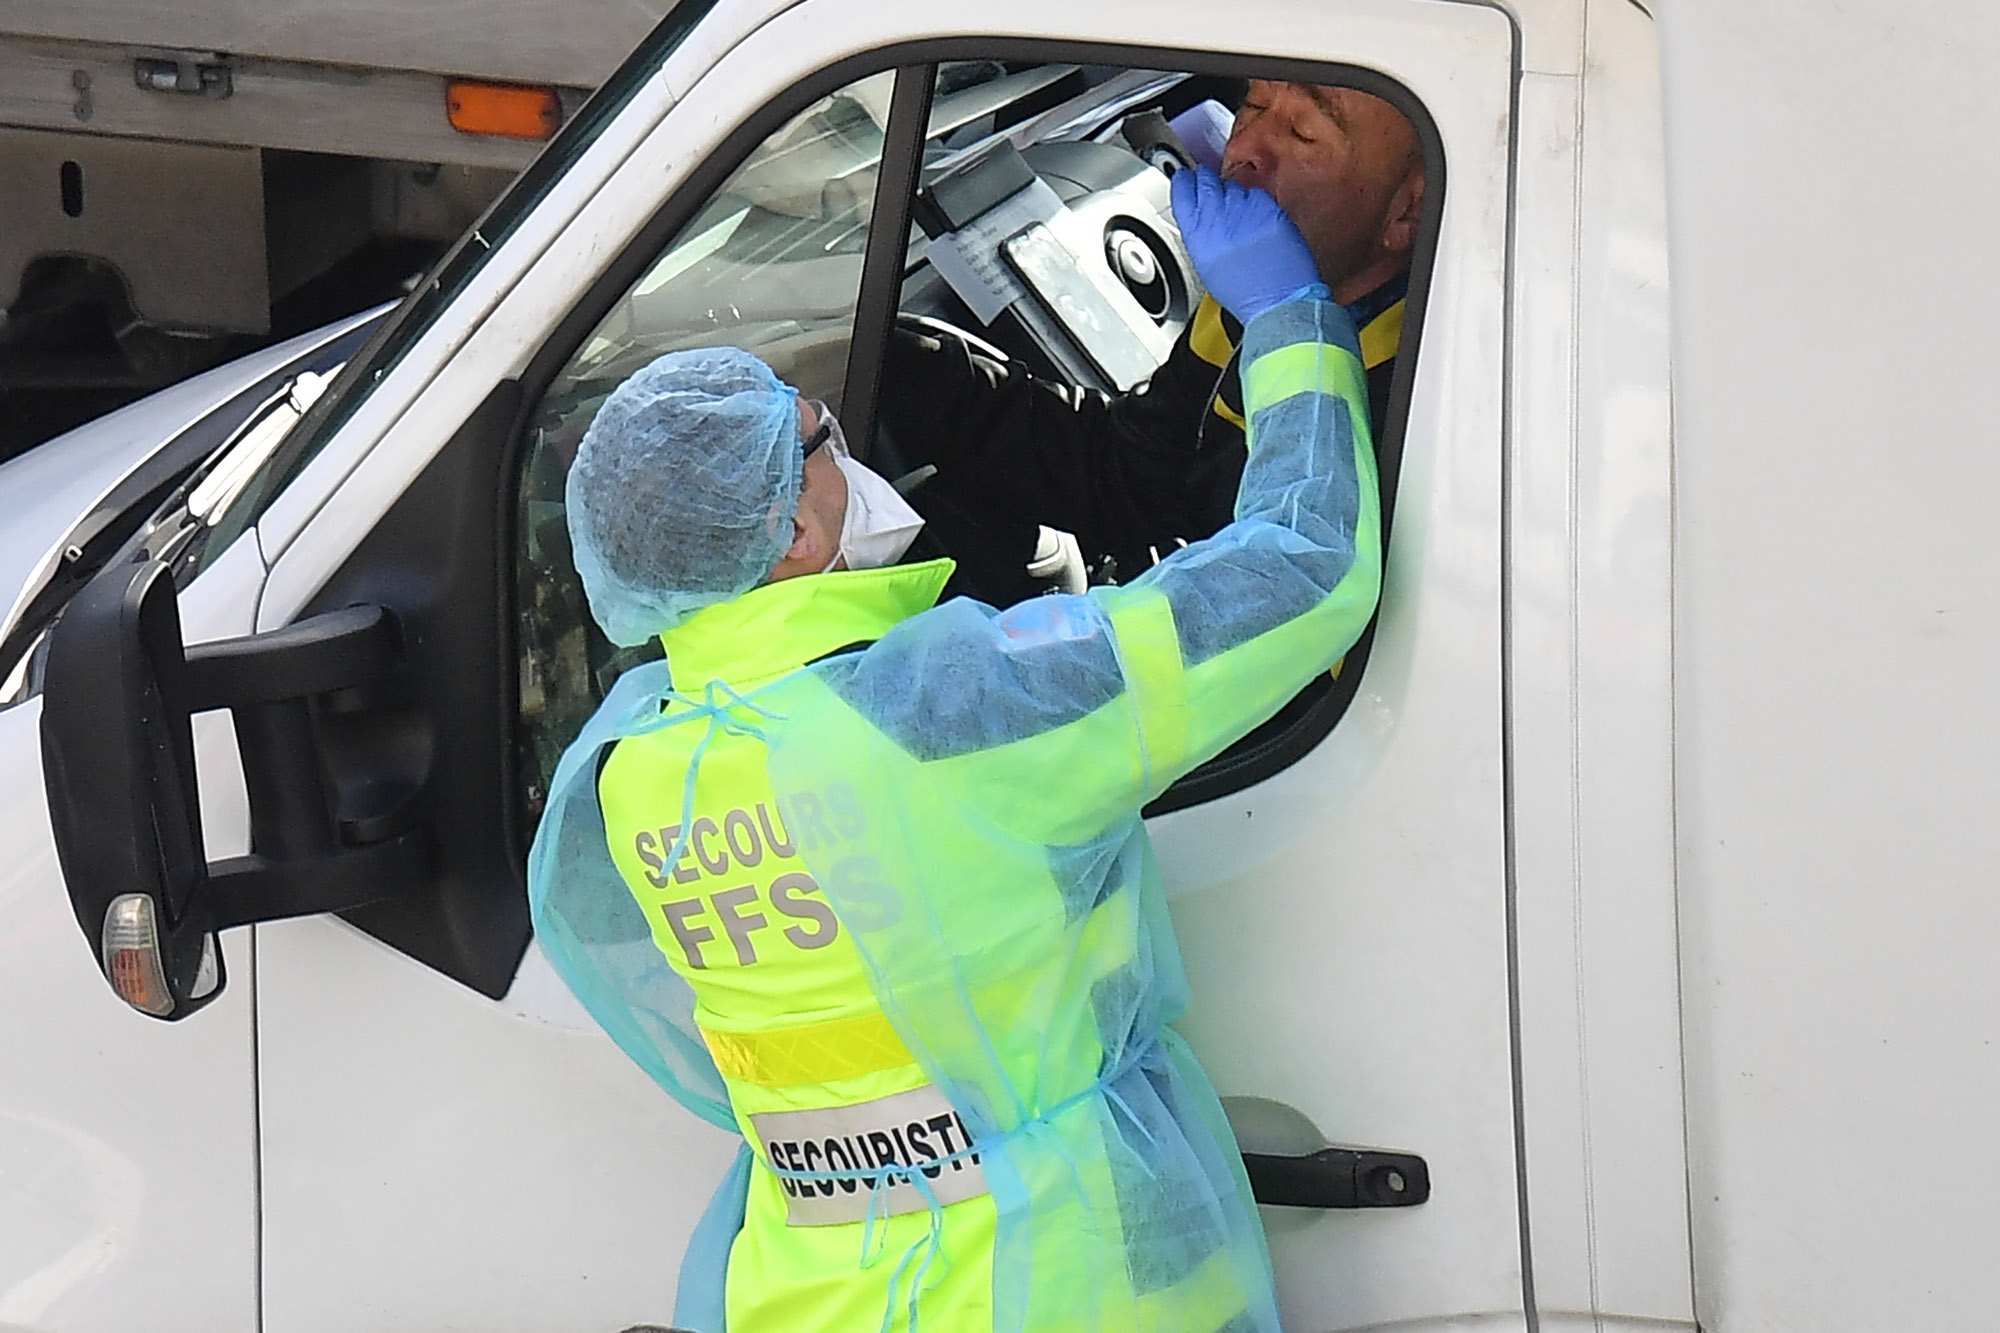 Members of the FFSS (French Federation of Rescue and First Aid) carry out covid-19 tests on lorry drivers close to the entrance to the Port of Dover, England, on December 24.